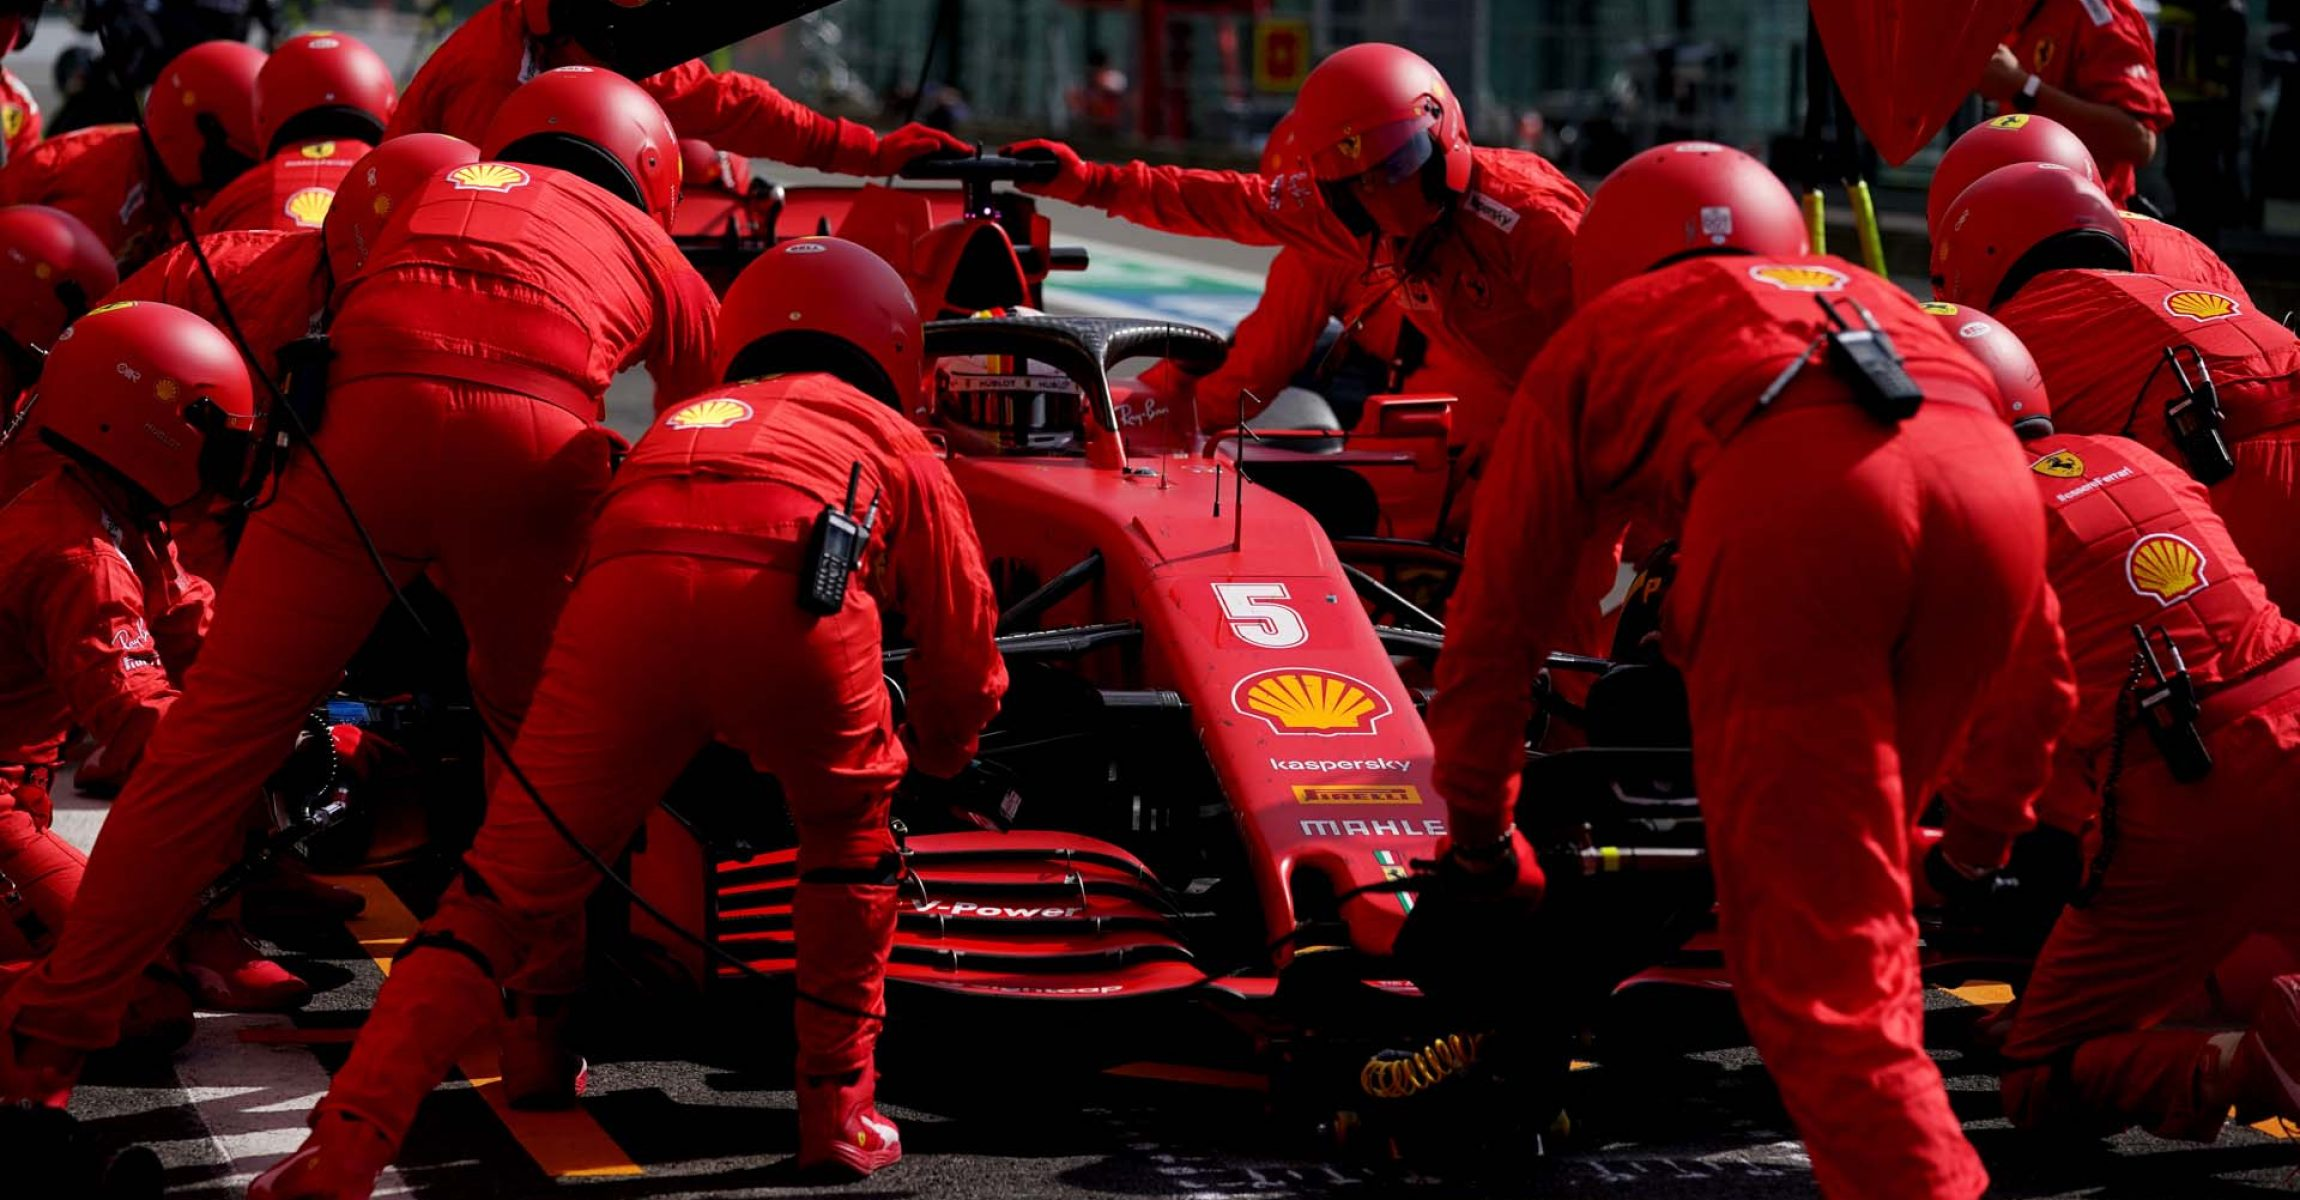 GP BELGIO F1/2020 -  DOMENICA 30/08/2020    credit: @Scuderia Ferrari Press Office Sebastian Vettel pitstop